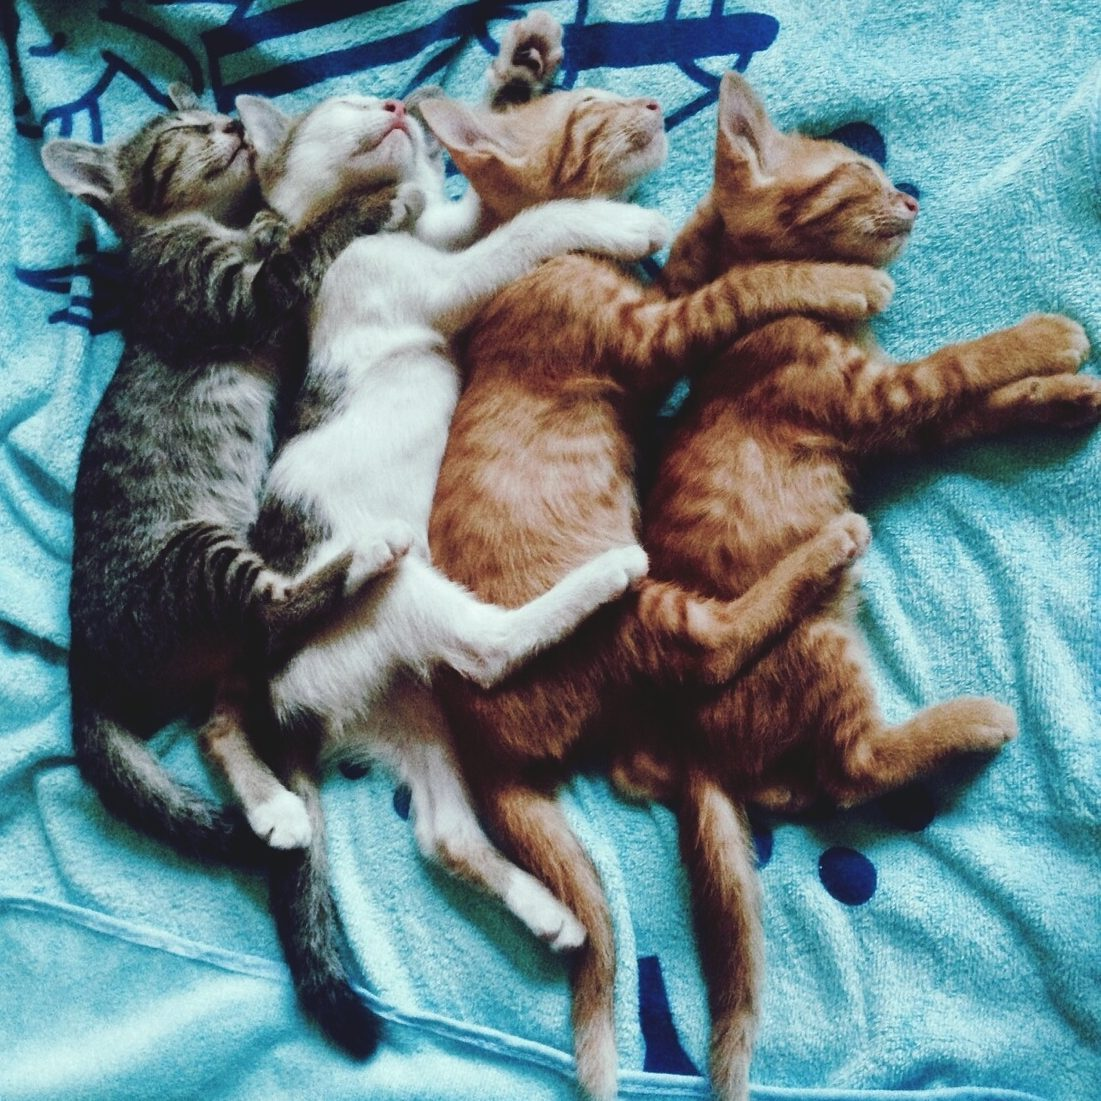 High Angle View Of Kittens Sleeping On Bed